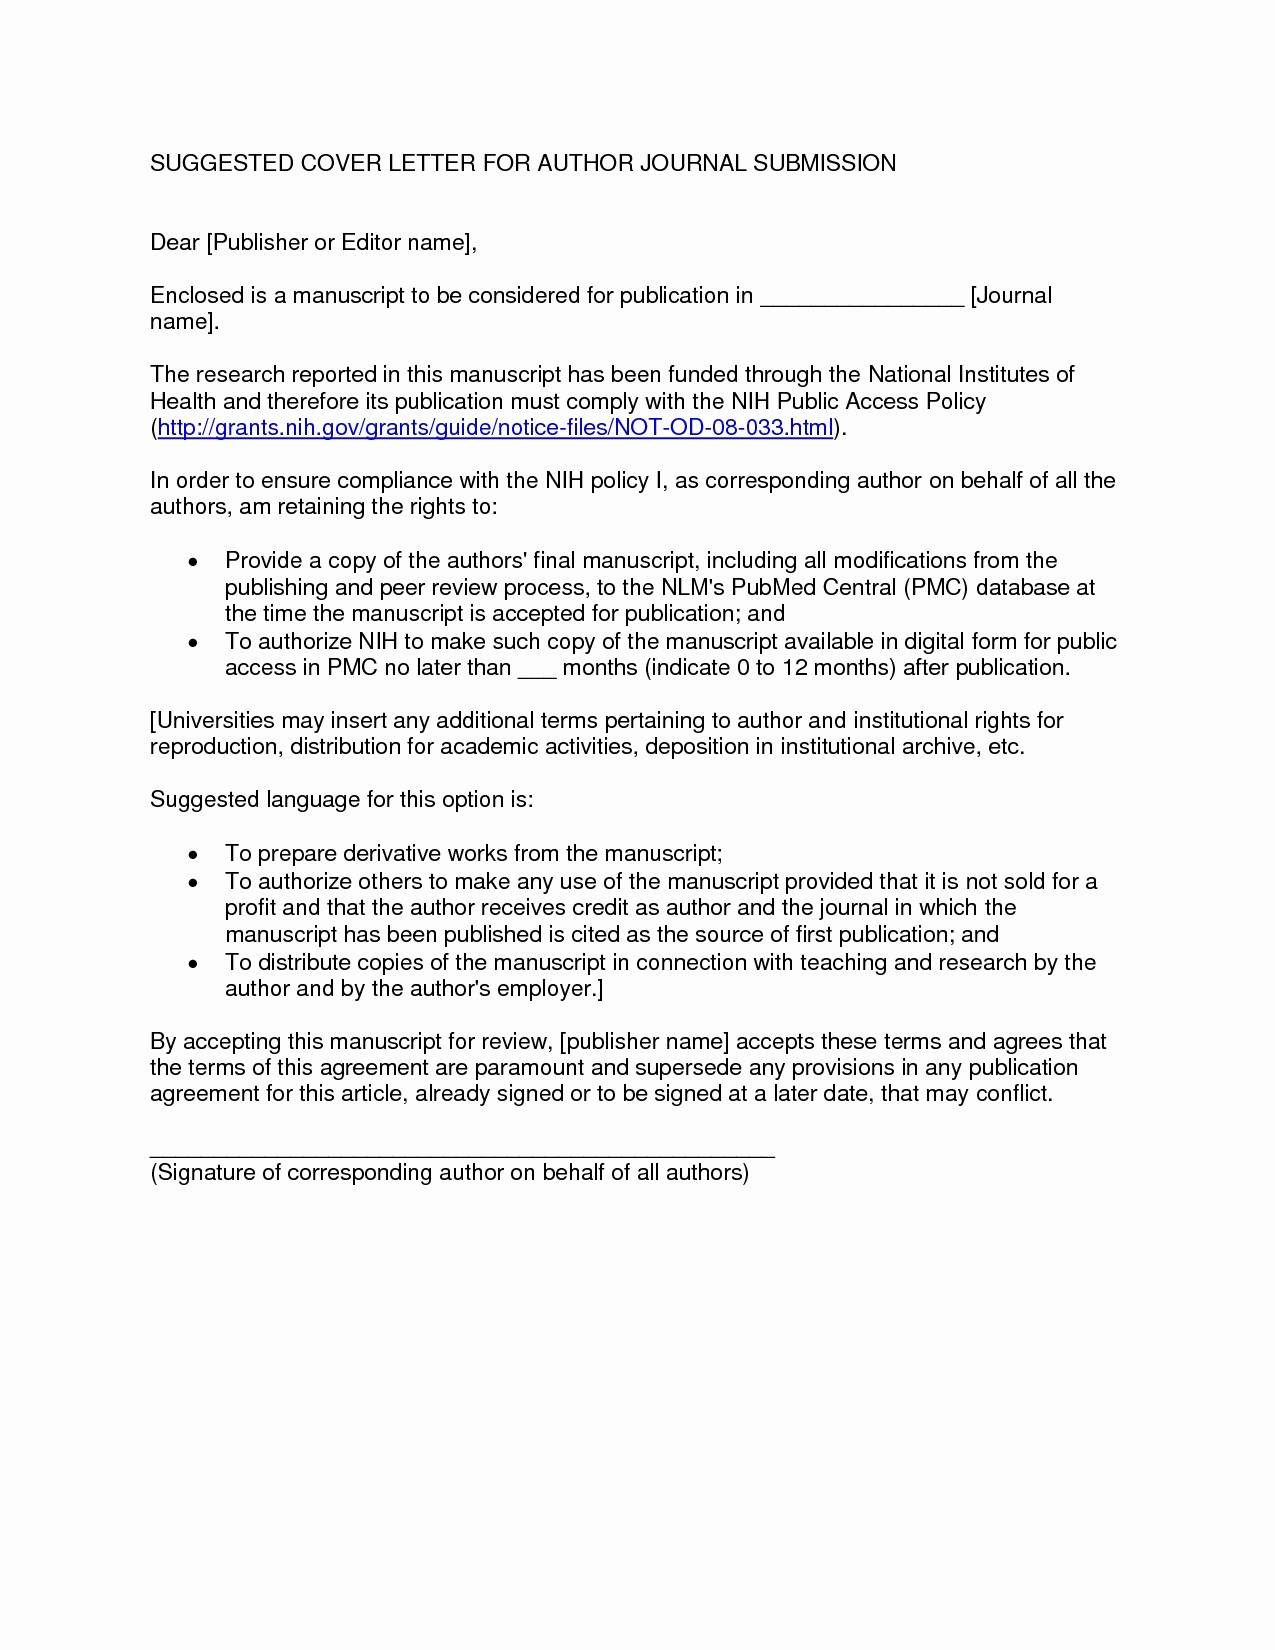 Letter Of Agreement Template Between Two Parties - Agreement Letter Between Two Parties Uk Awesome Employment Agreement